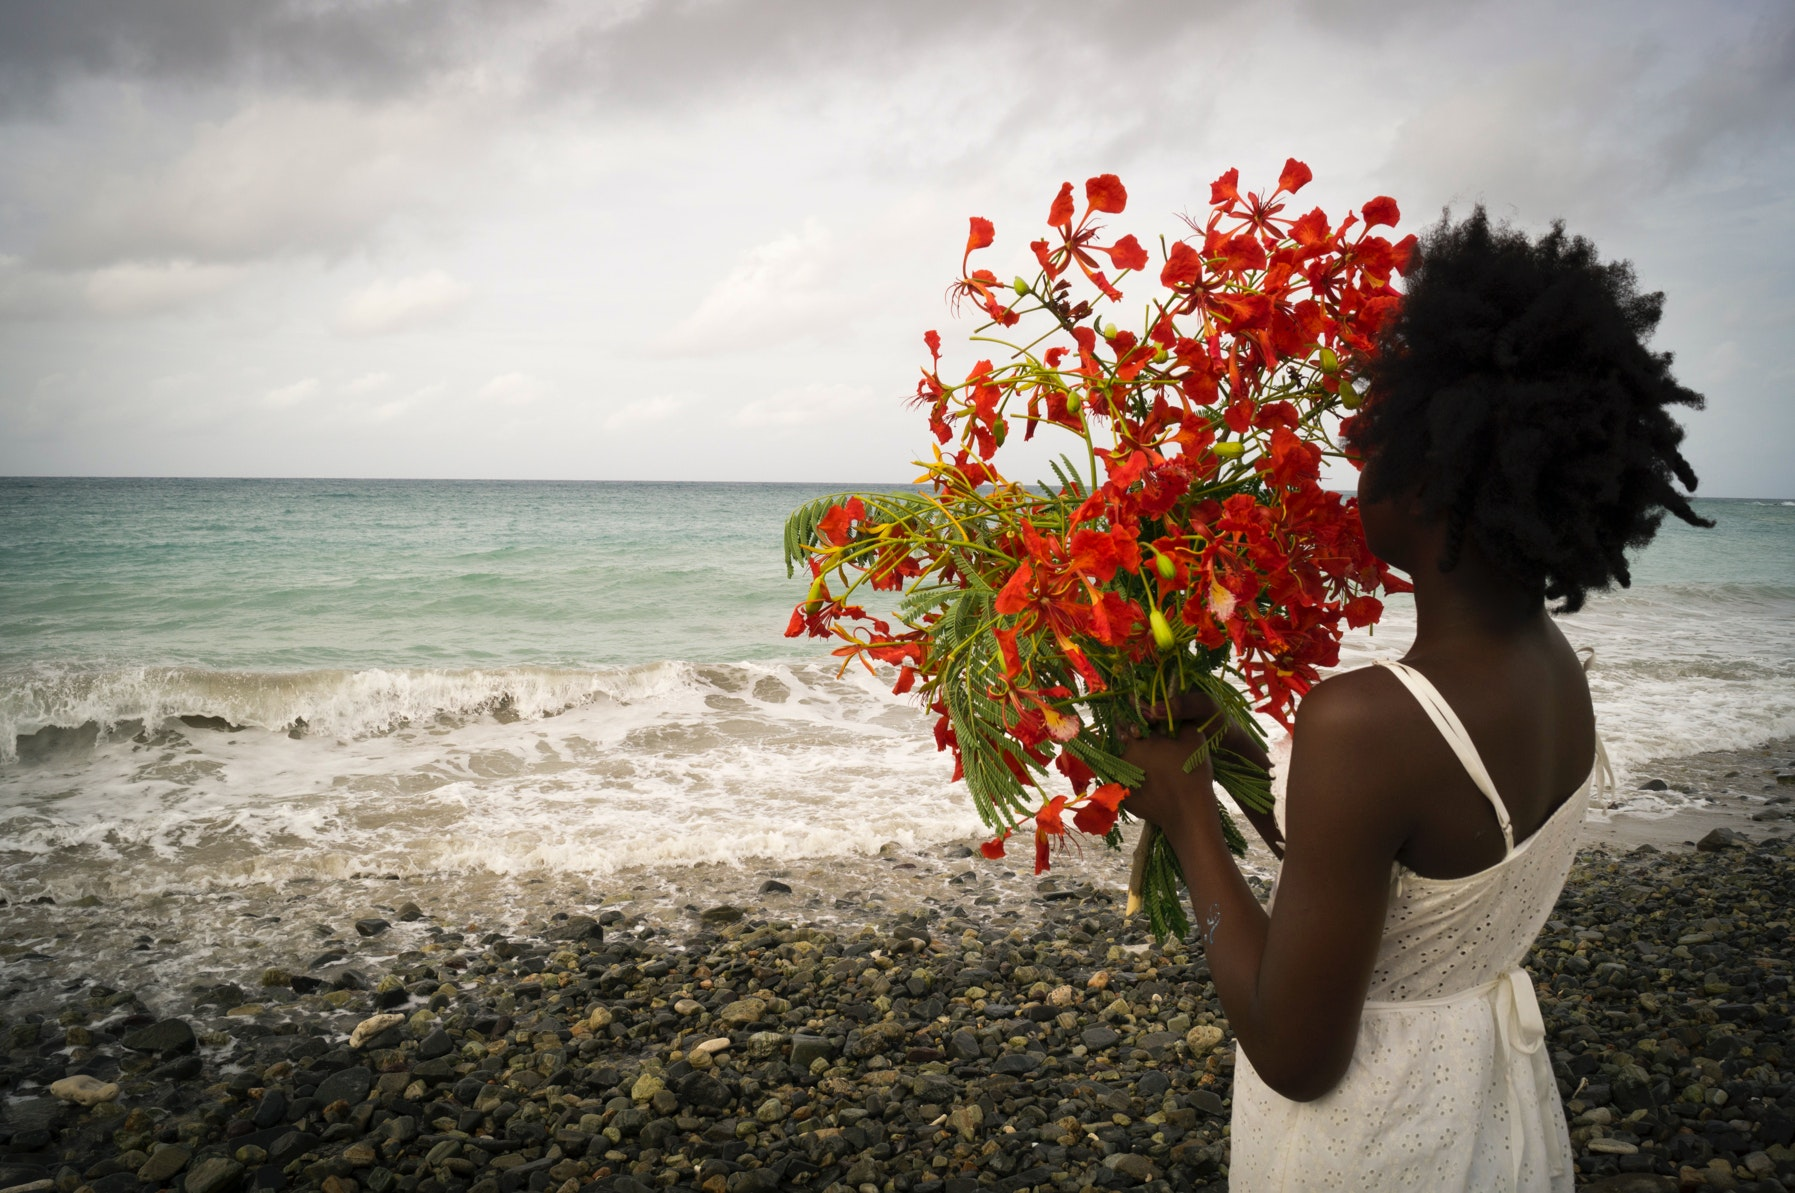 """Untitled (looking out) from the series """"what is the value of water if it doesn't quench our thirst for..."""" by Deborah Jack"""